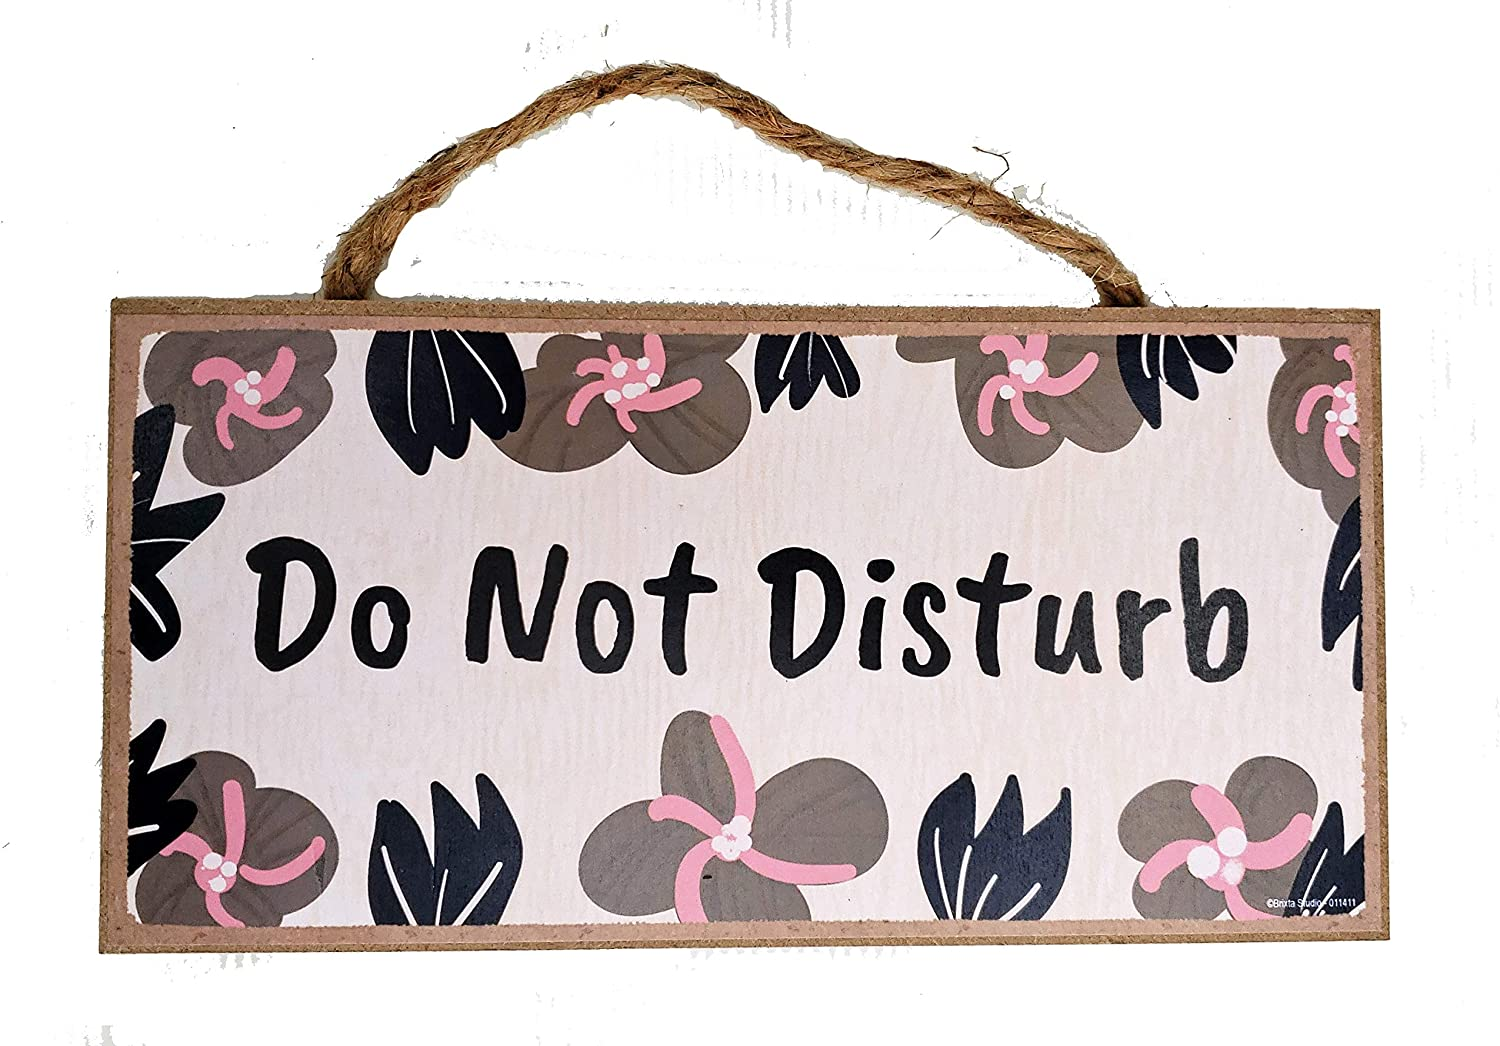 Brixta Studio Floral Do Not Disturb Door Sign - Hanging Wooden Wall Art Decor - 10 x 5 Inches